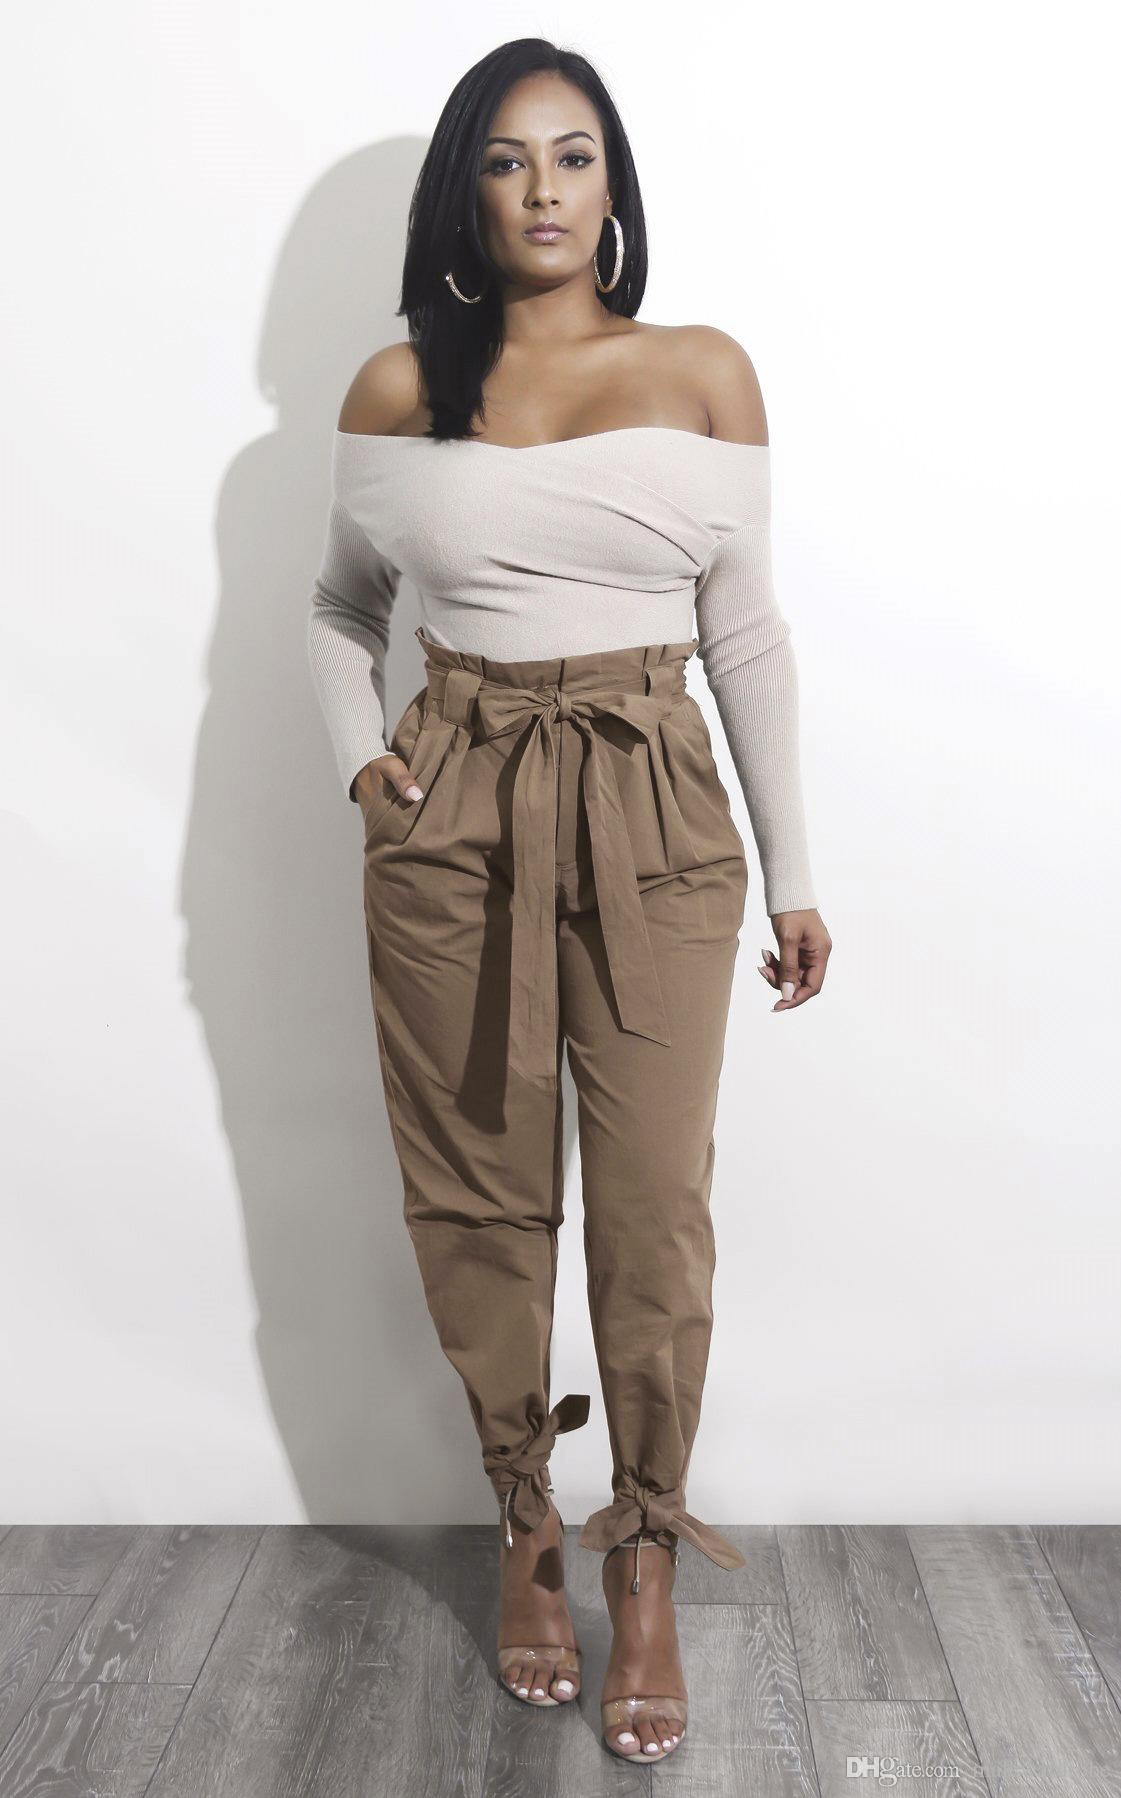 b8d1f2d61da6ef 2019 Women Casual High Waist Pants Solid Color Bandage Design Harem Pants  Fashion Trousers With Sashes From Malewardrobe, $55.42 | DHgate.Com